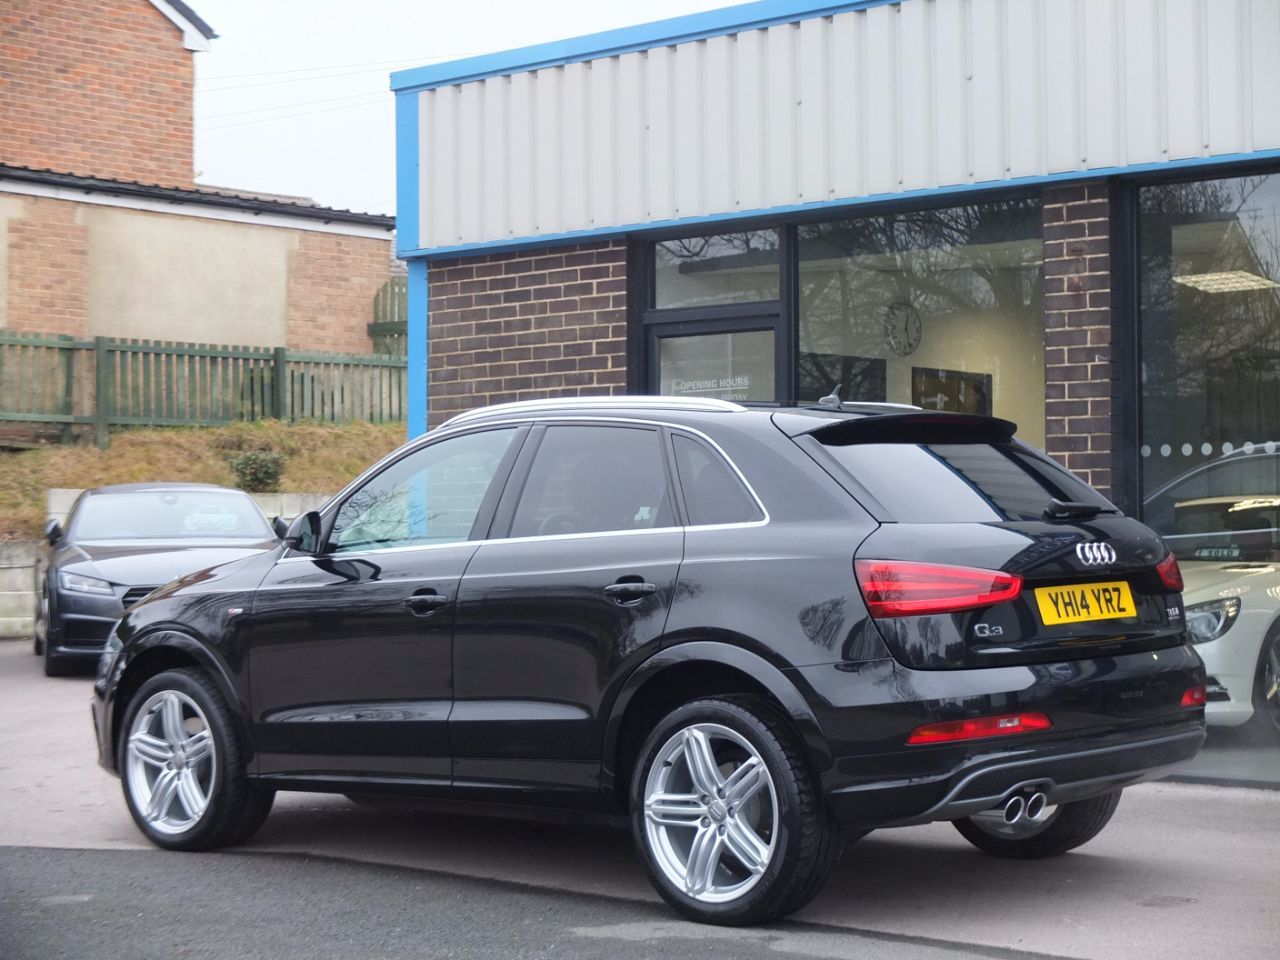 second hand audi q3 2 0 tdi quattro s line plus s tronic 140ps for sale in bradford west. Black Bedroom Furniture Sets. Home Design Ideas